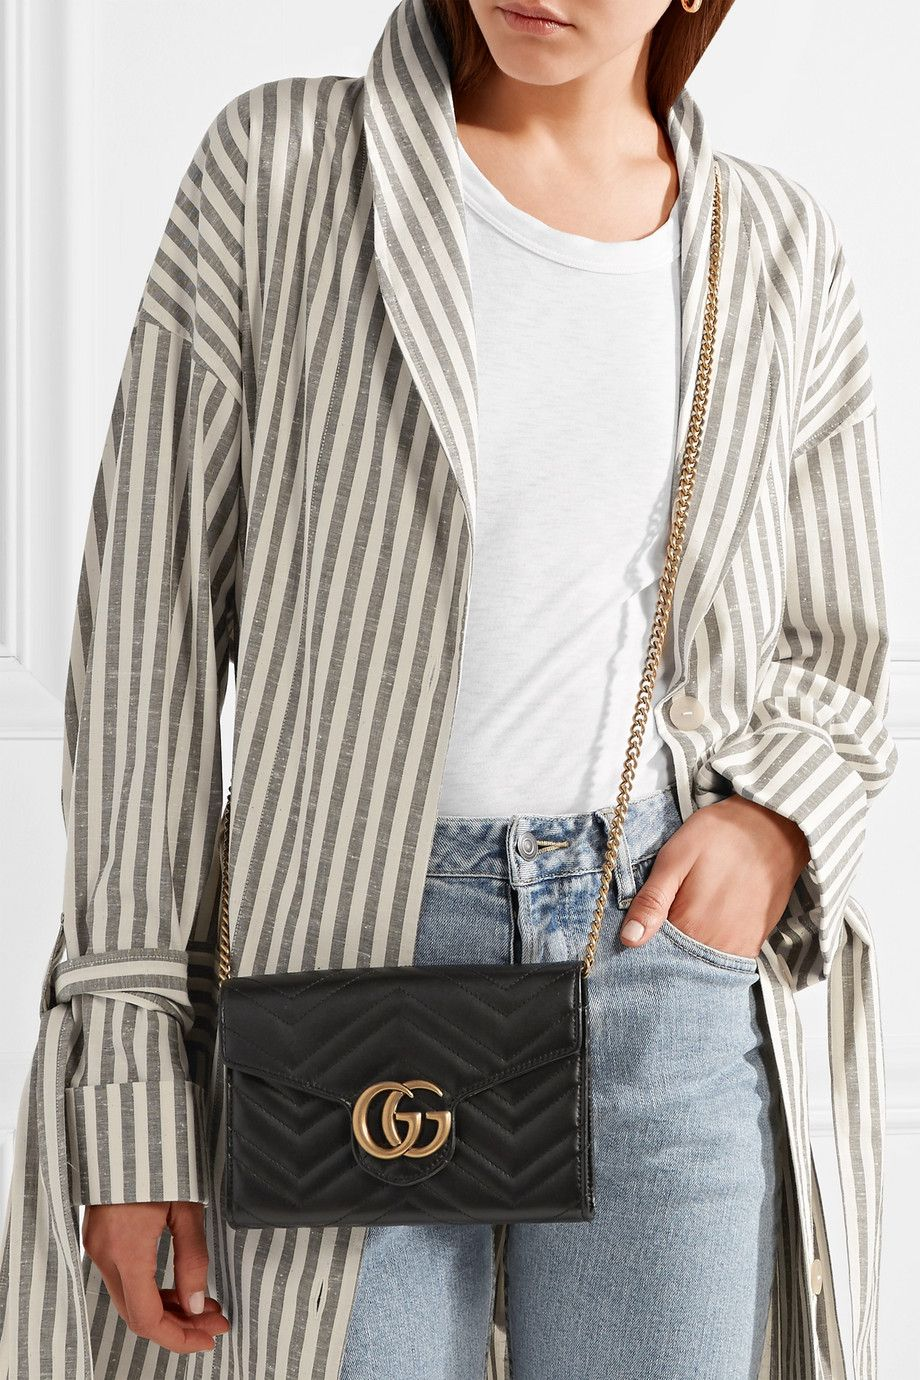 a7ad38e9bb55 GG Marmont mini quilted leather shoulder bag #fashion #pandafashion #clutch  #gucci